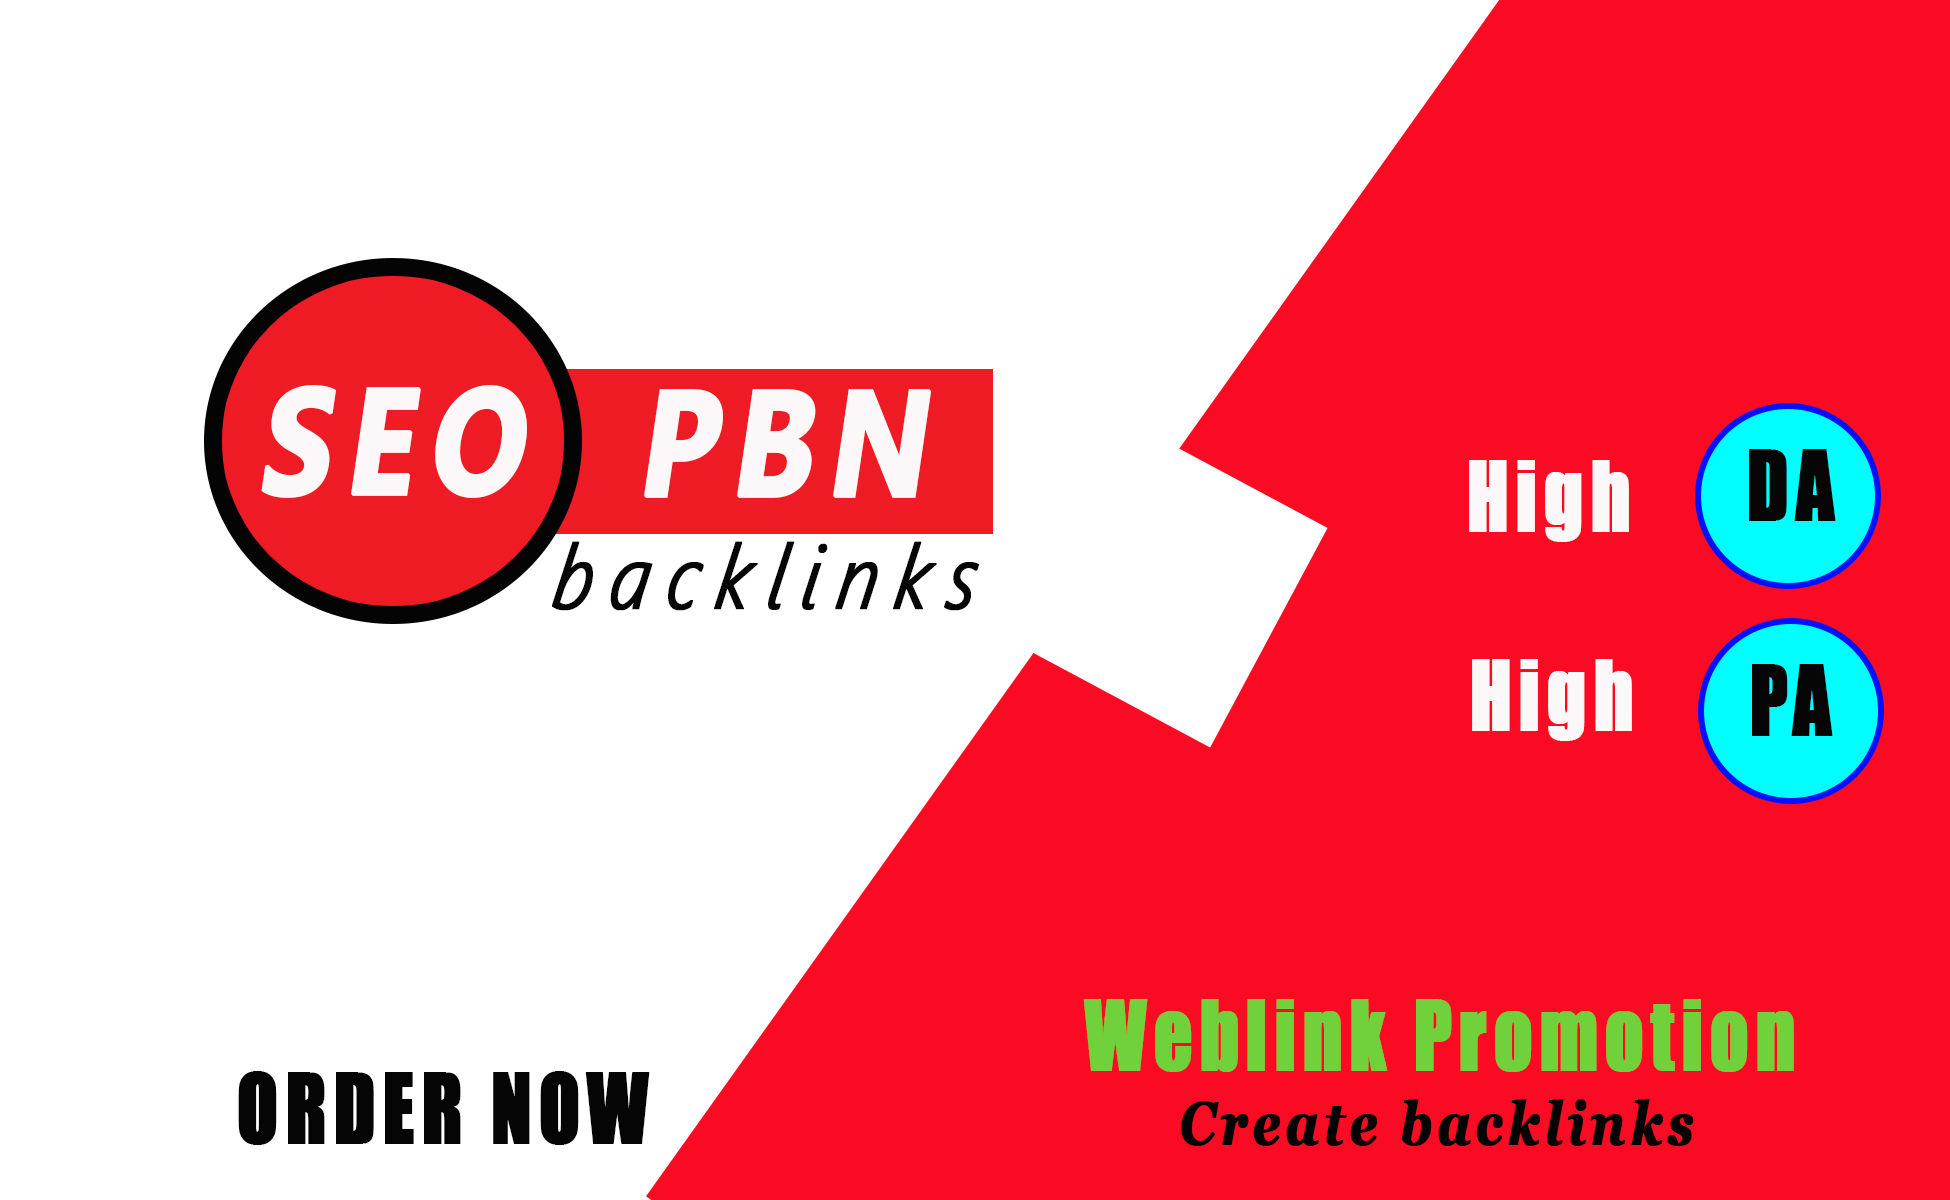 Create High DA PA PBN Backlinks to Rank higher in google